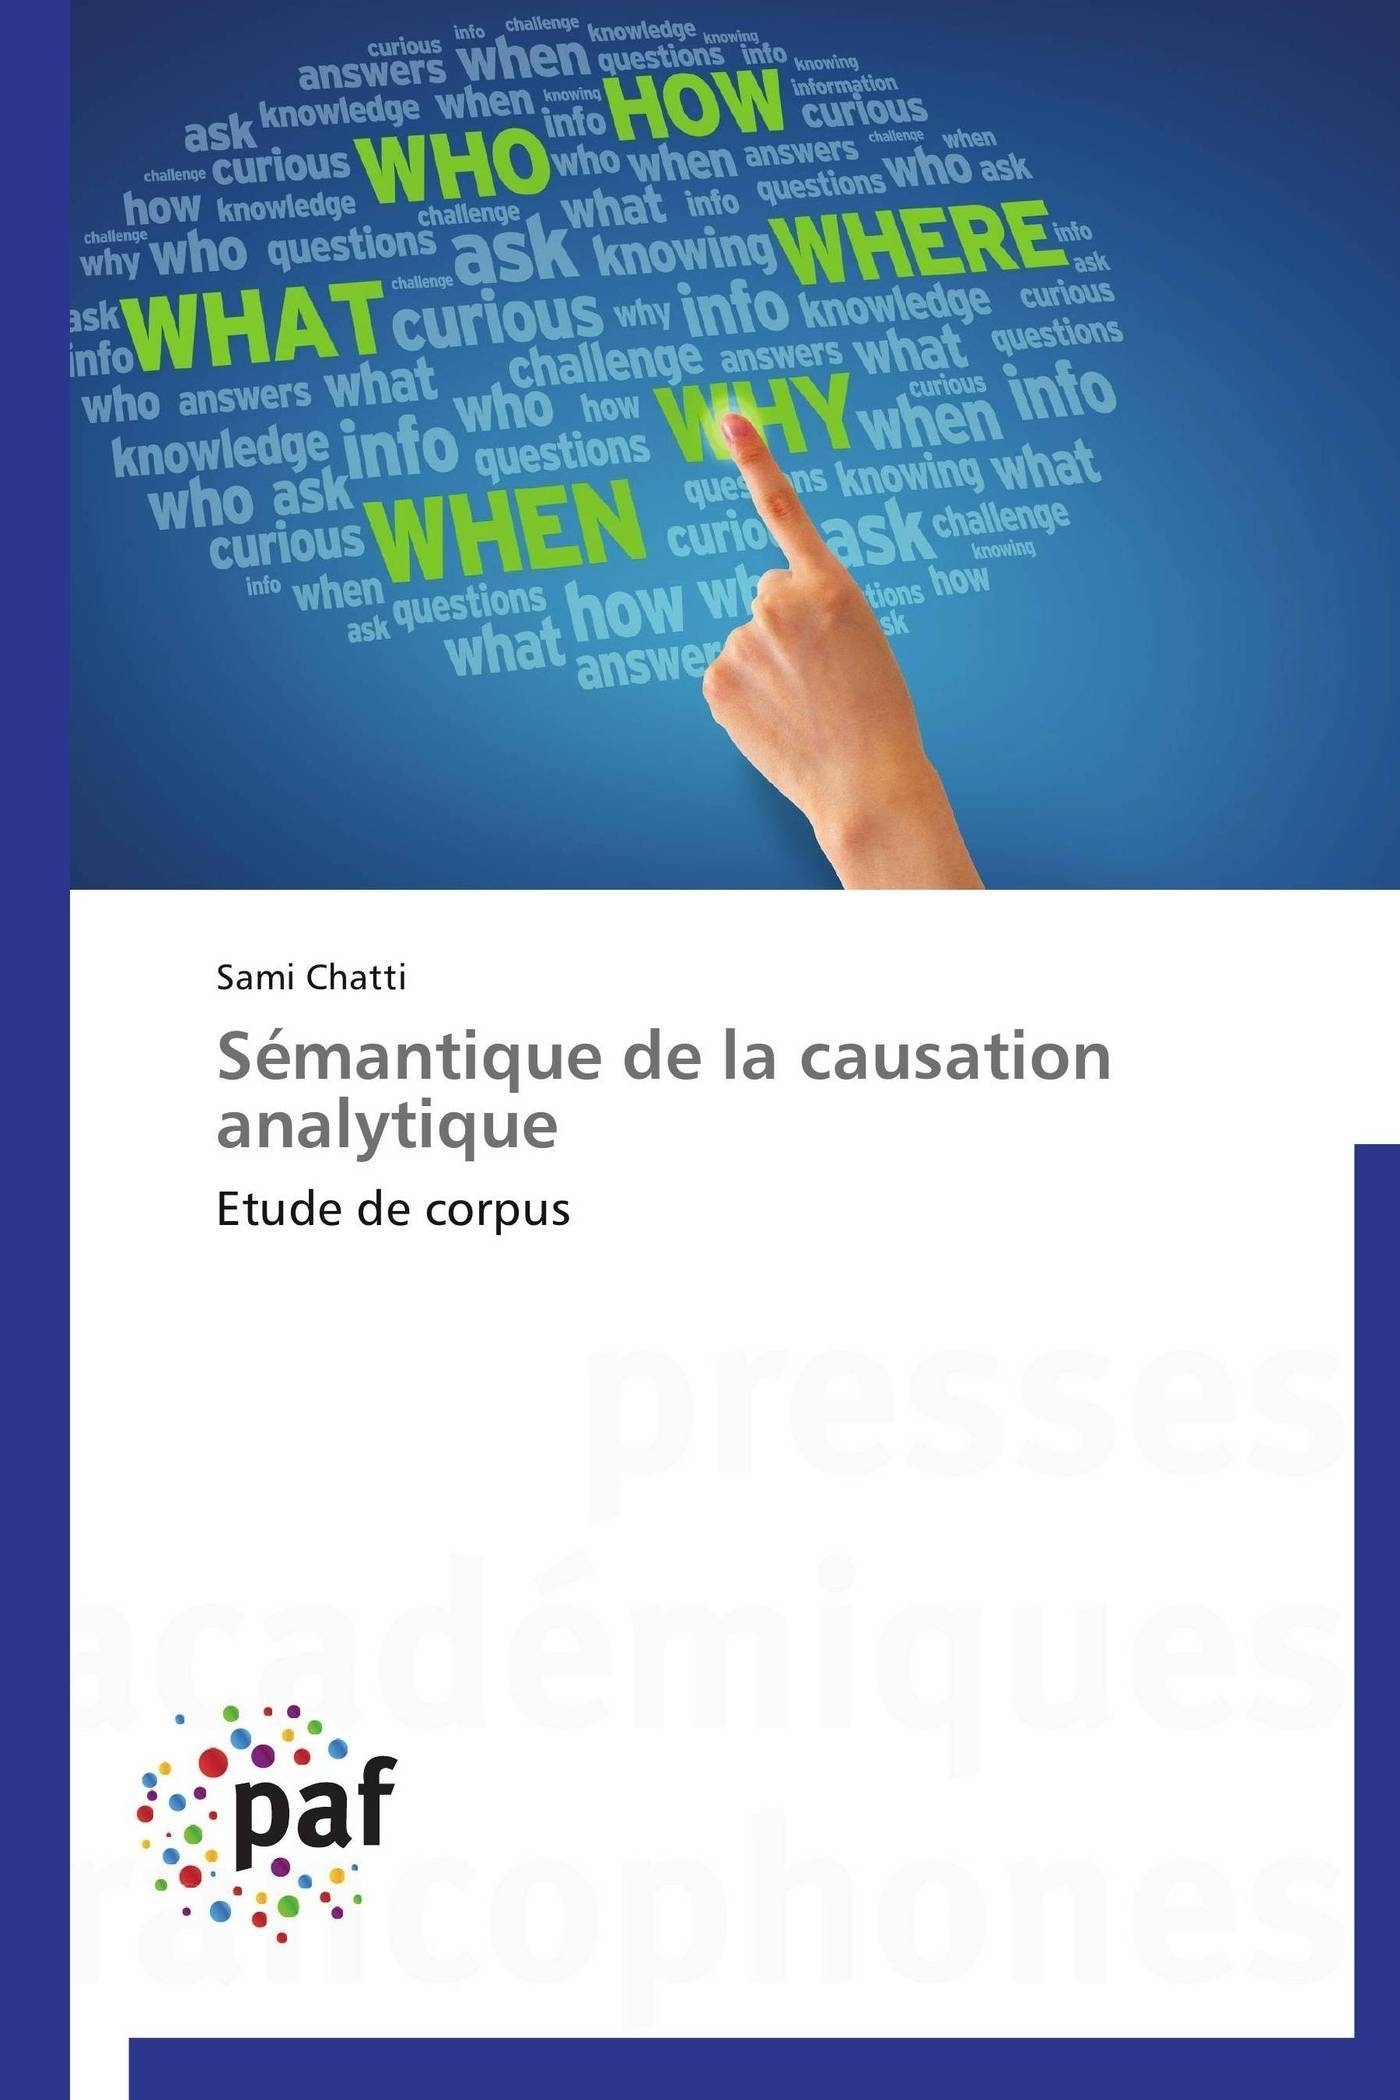 SEMANTIQUE DE LA CAUSATION ANALYTIQUE